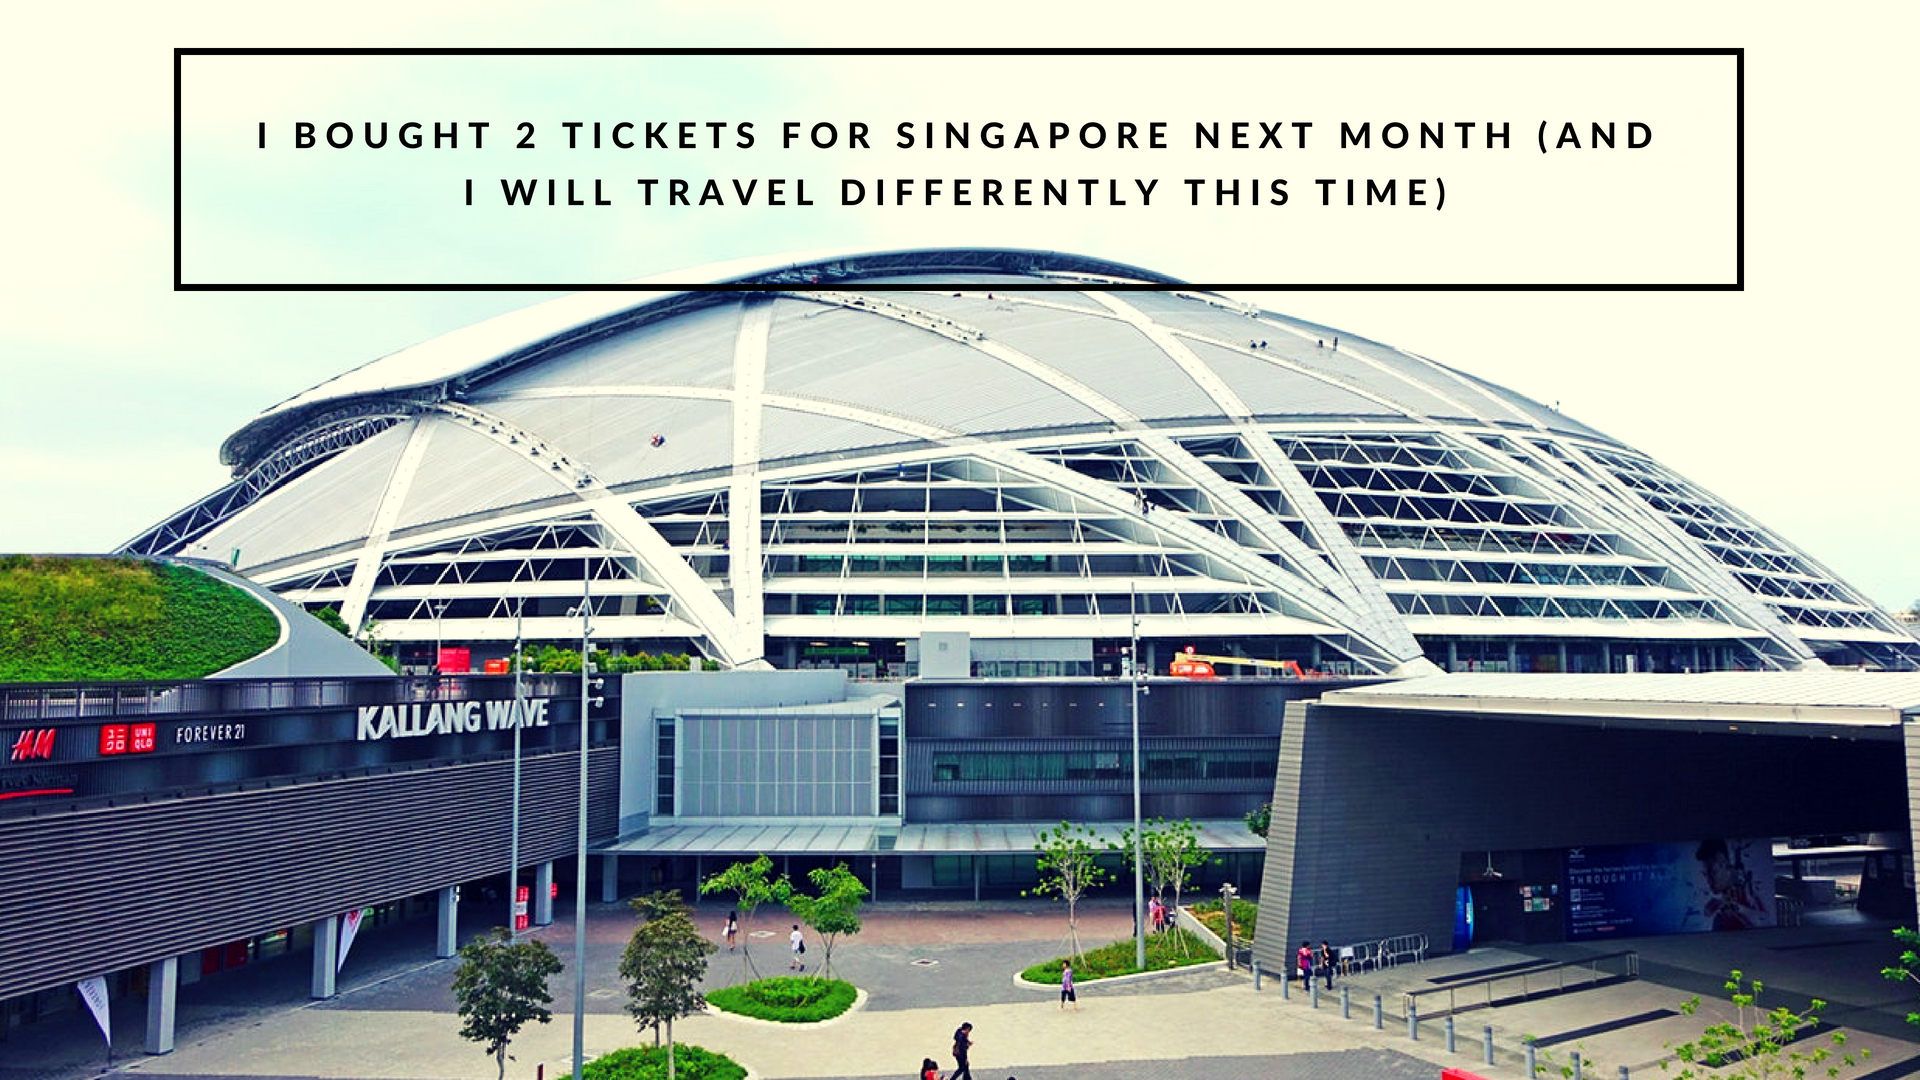 I Bought 2 Tickets For Singapore Next Month (And I Will Travel Differently This Time)